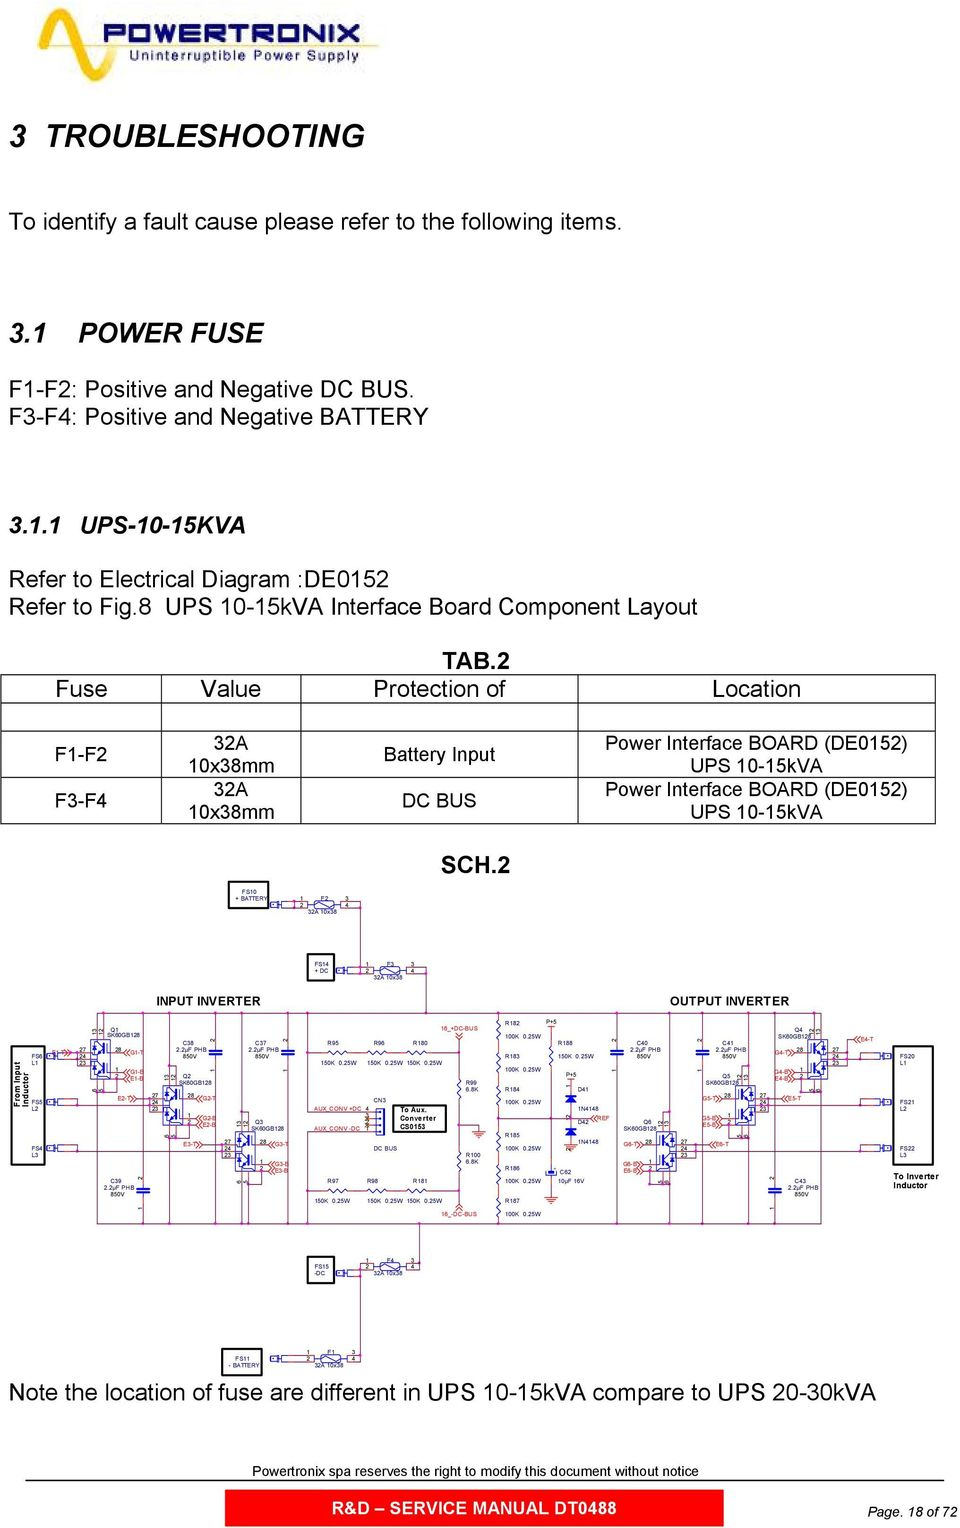 Fuse Value Protection of Location FF FF A 0xmm A 0xmm Battery Input DC BUS Power Interface BOARD (DE0) UPS 0kVA Power Interface BOARD (DE0) UPS 0kVA SCH.